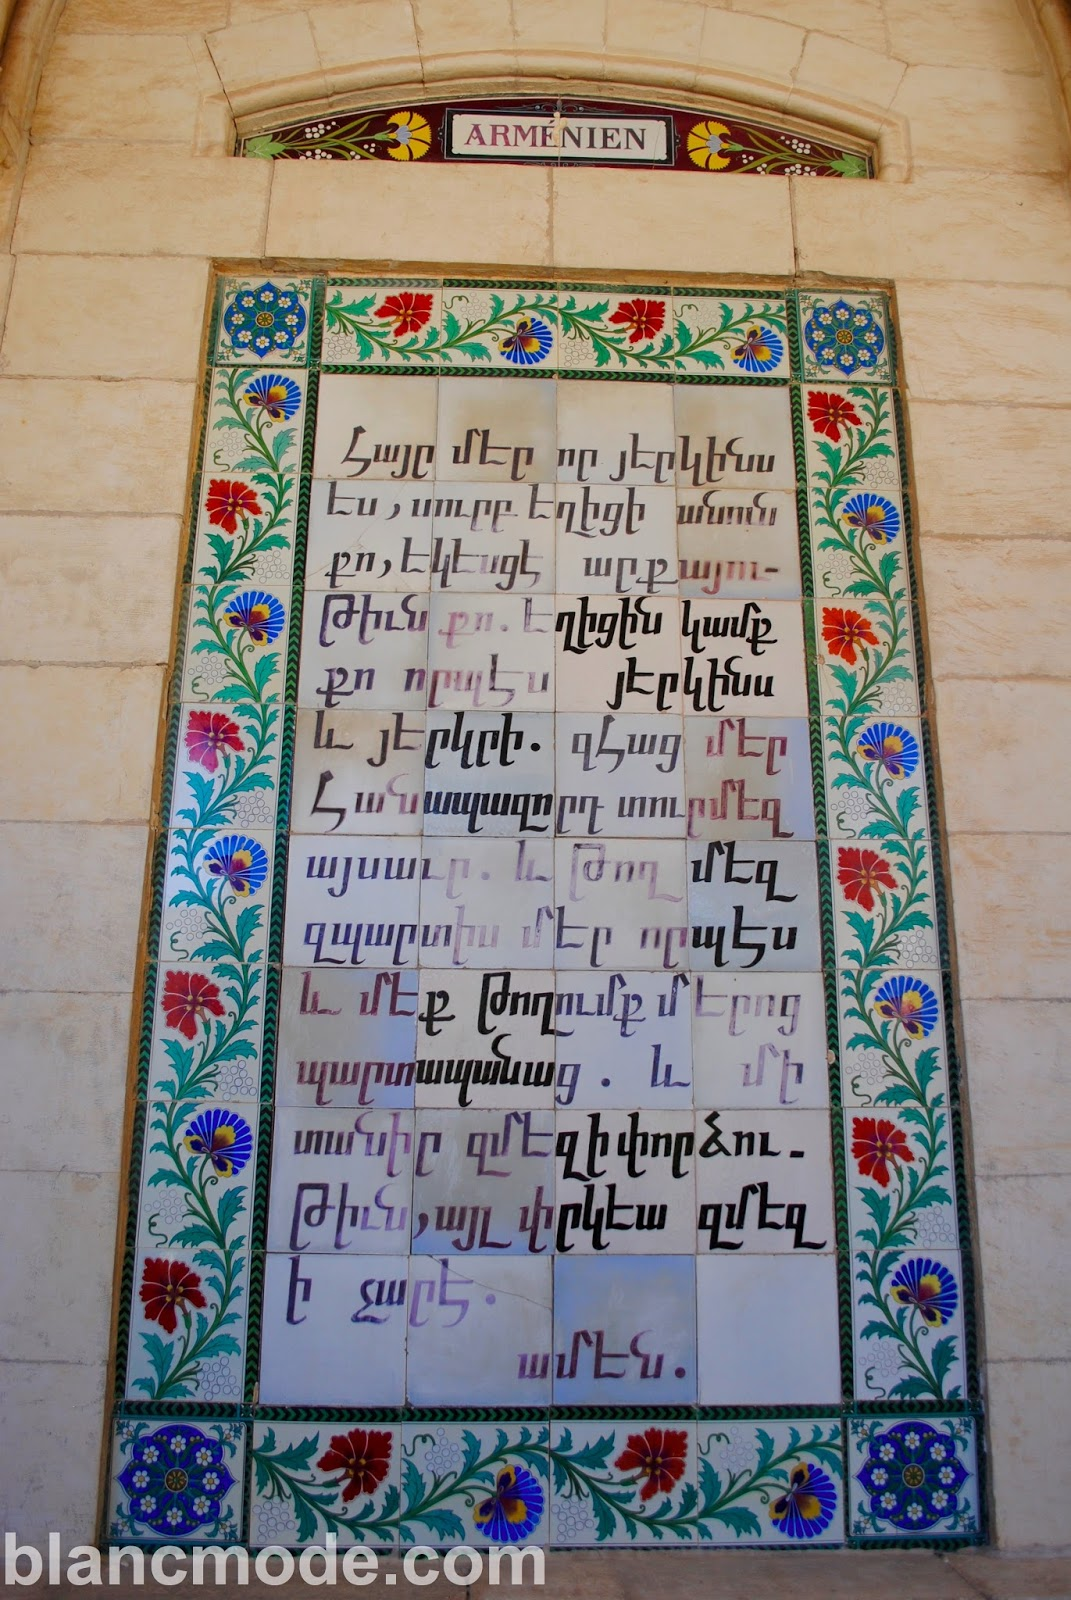 church of the pater noster armenian Lord's prayer